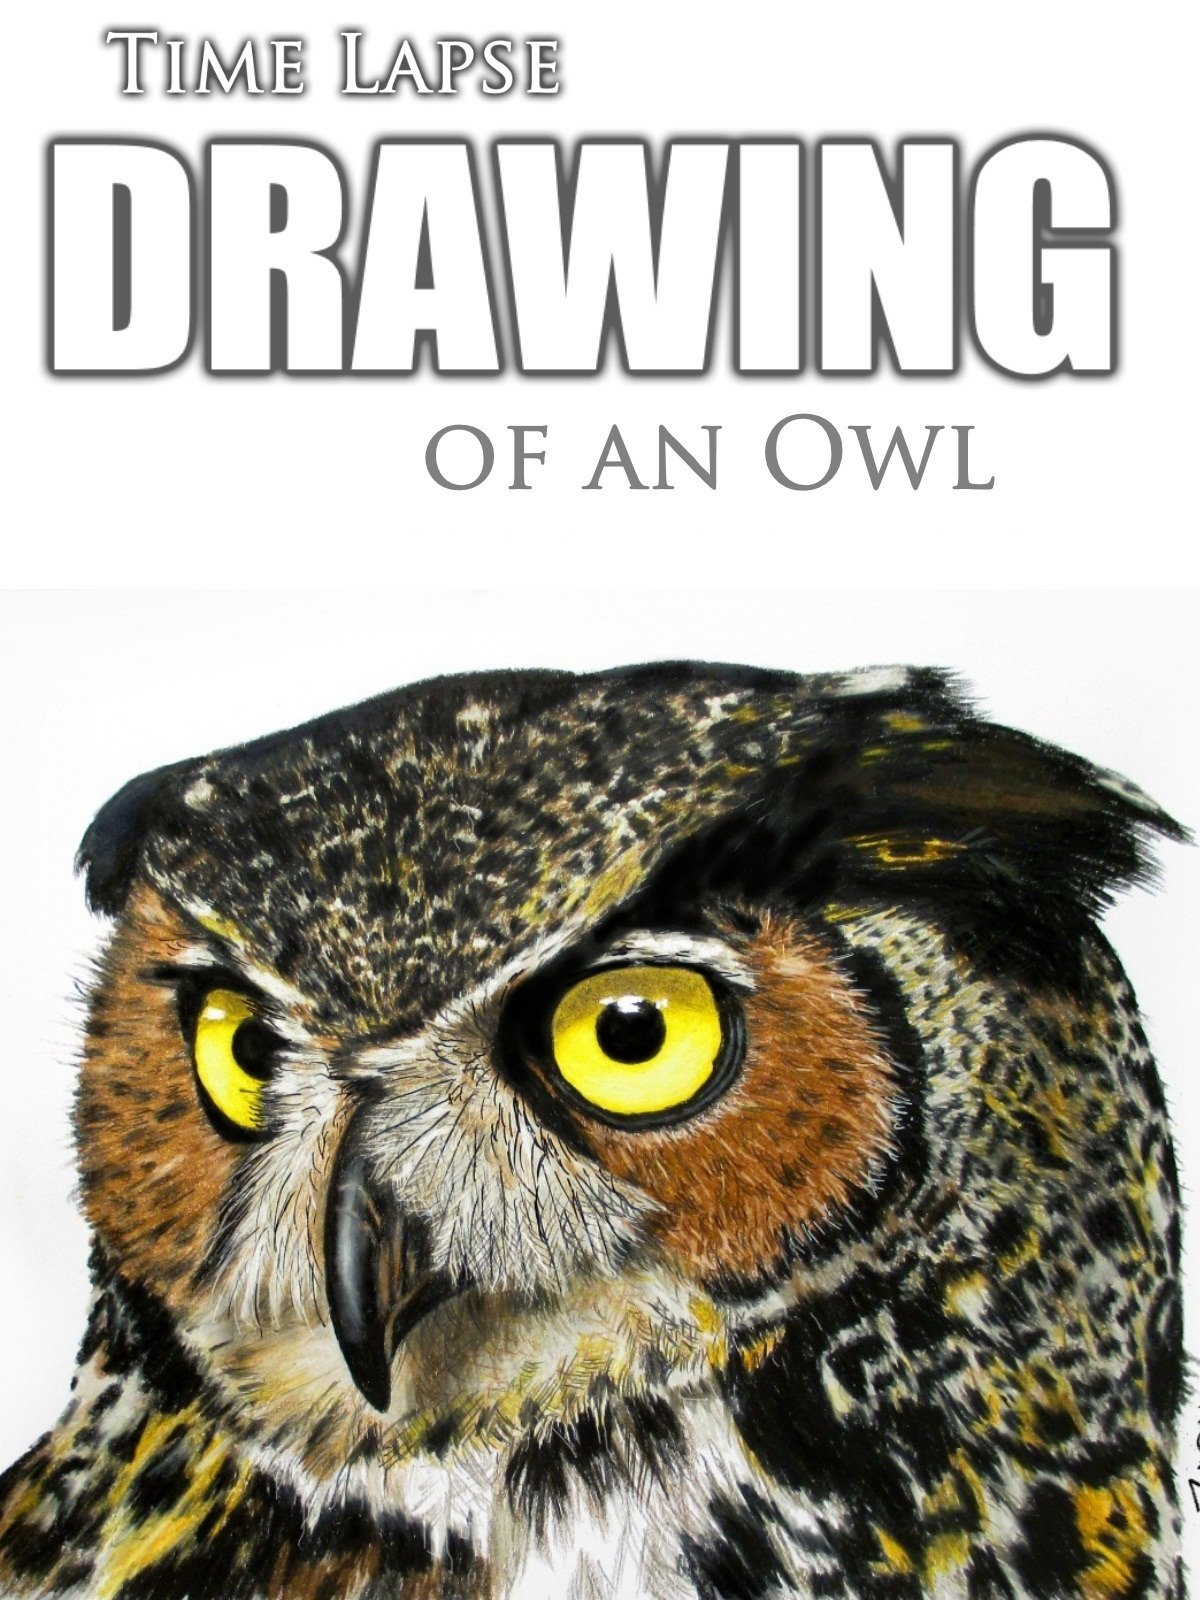 Clip: Time Lapse Drawing of an Owl